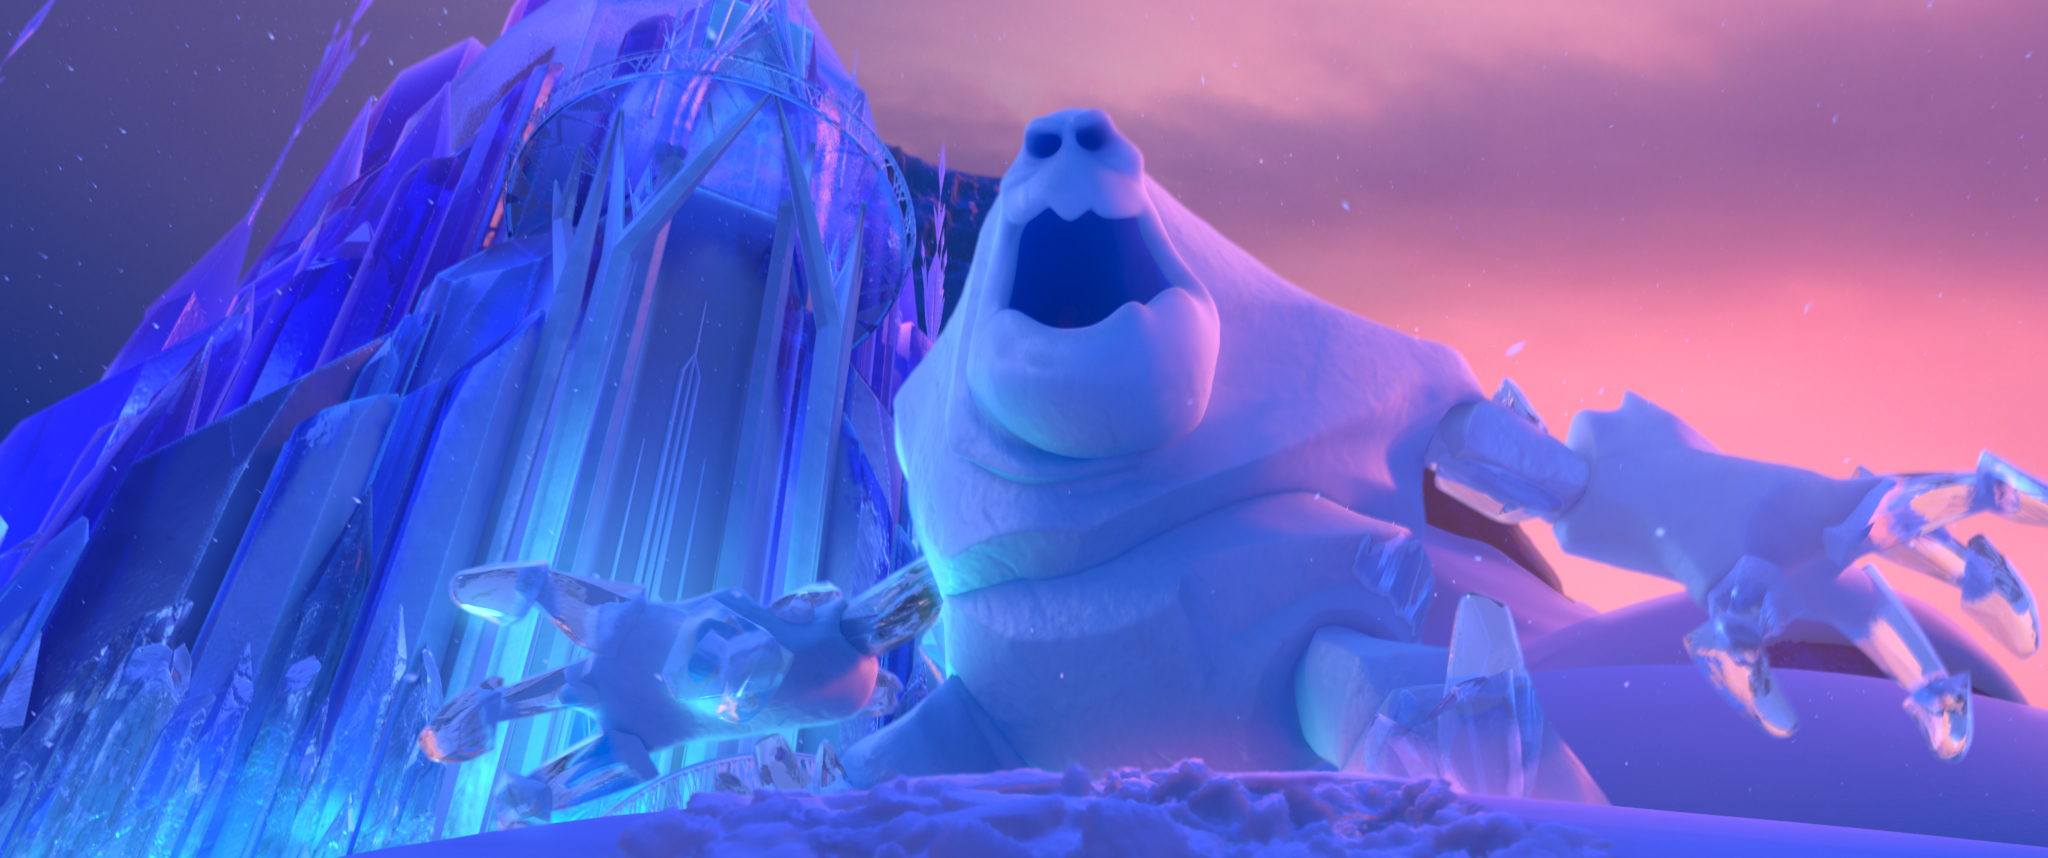 Frozen Disney Marshmallow Snow Monster